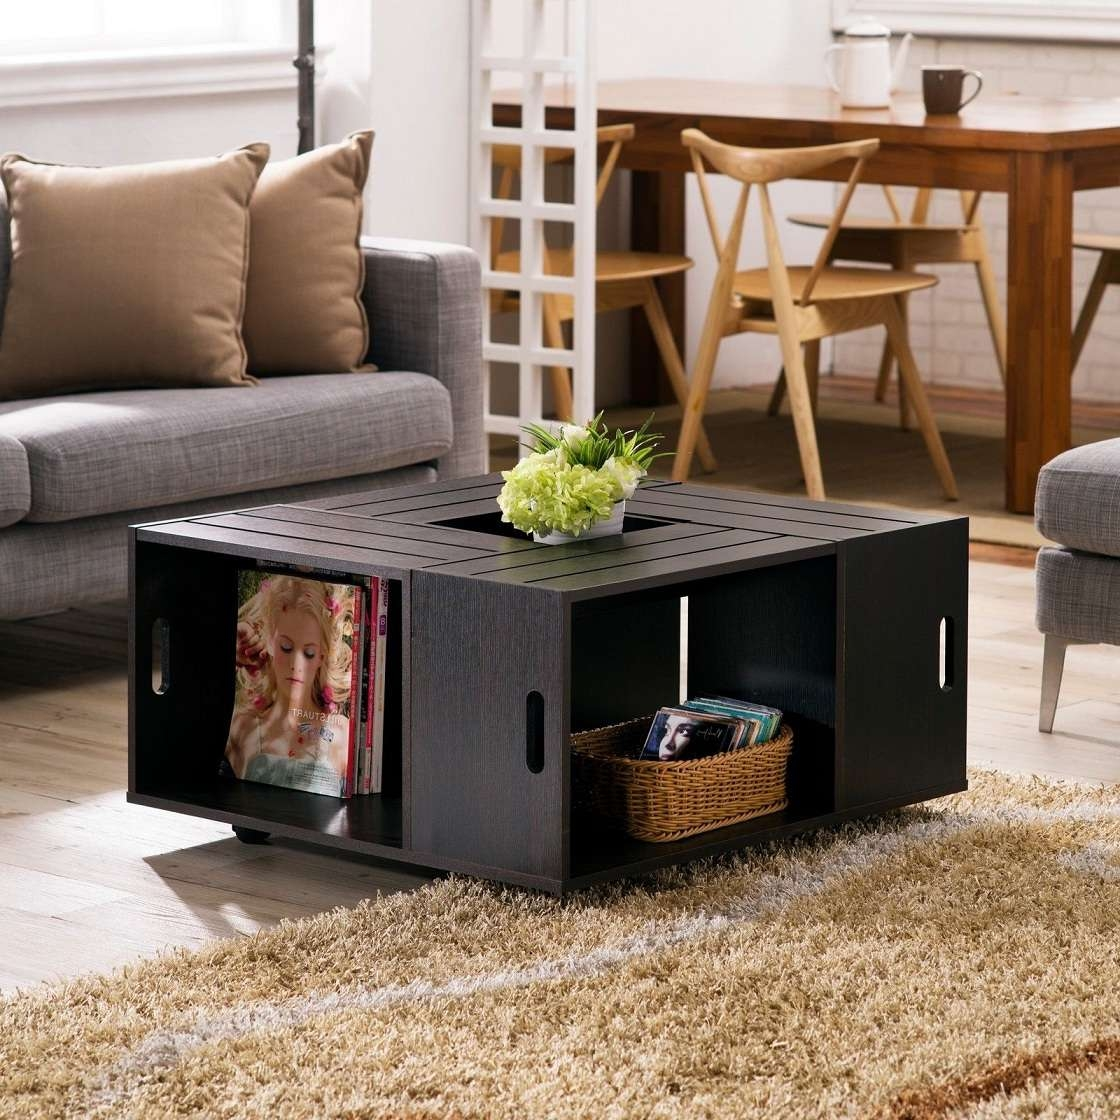 Popular Square Coffee Table Storages Within Coffee Tables With Storage Drawers In Reputable Swivel Coffee (View 20 of 20)